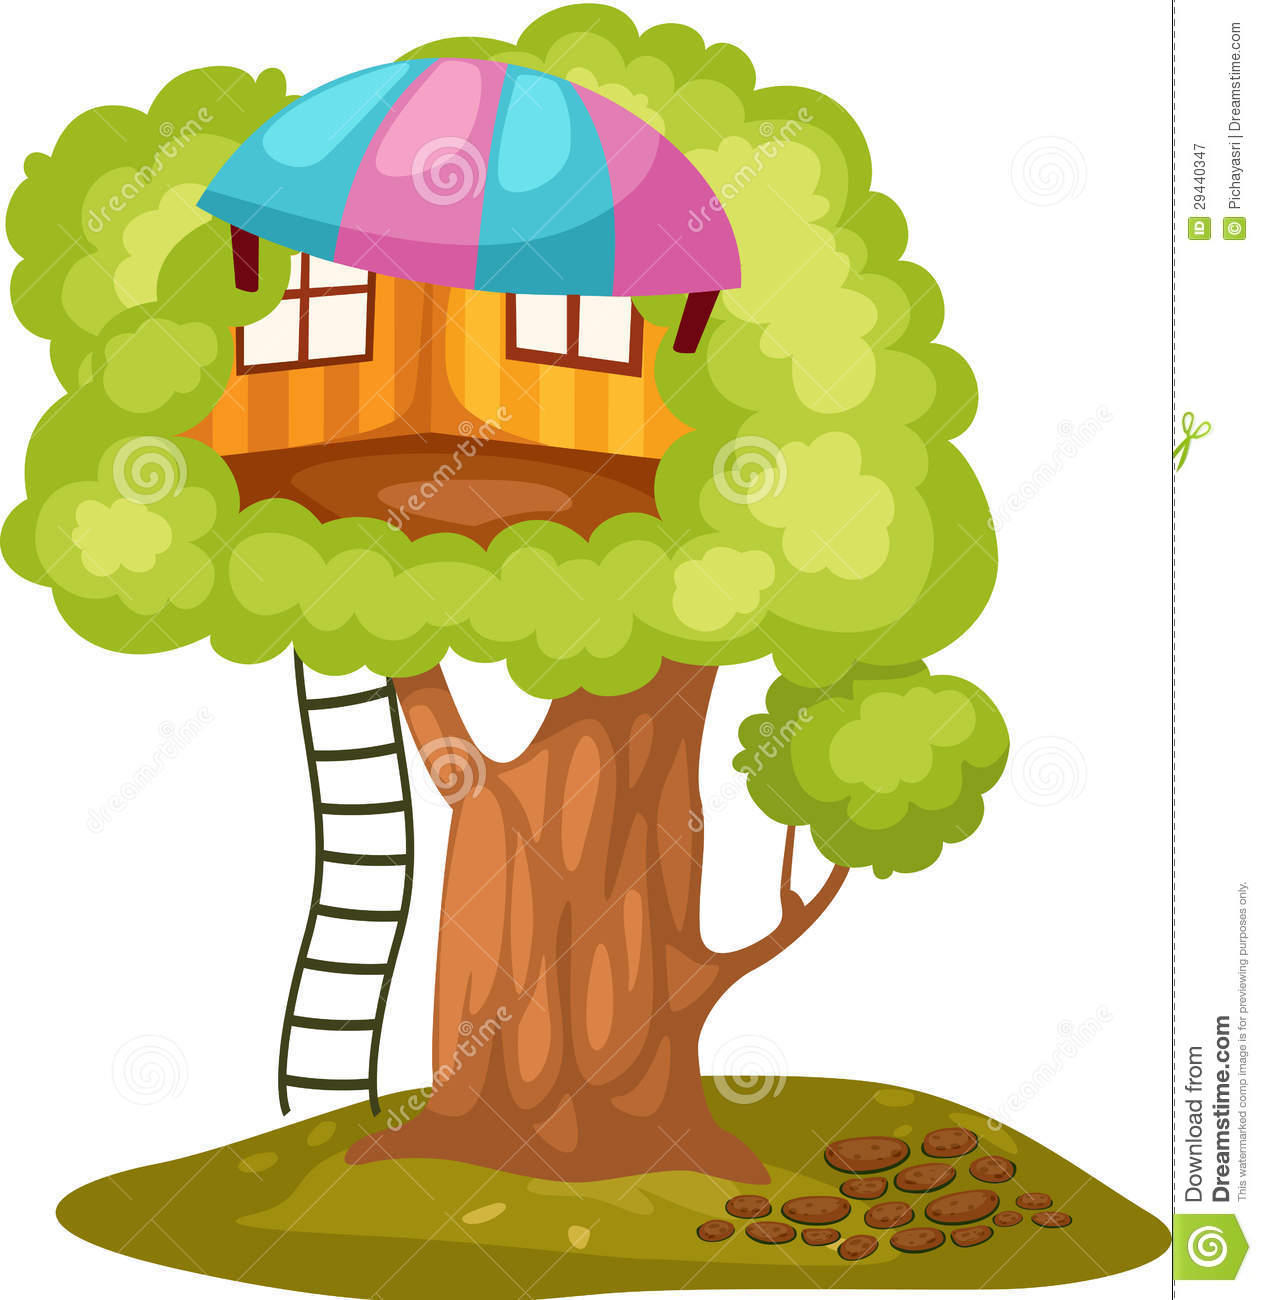 Treehouse Royalty Free Stock Photography - Image: 29440347